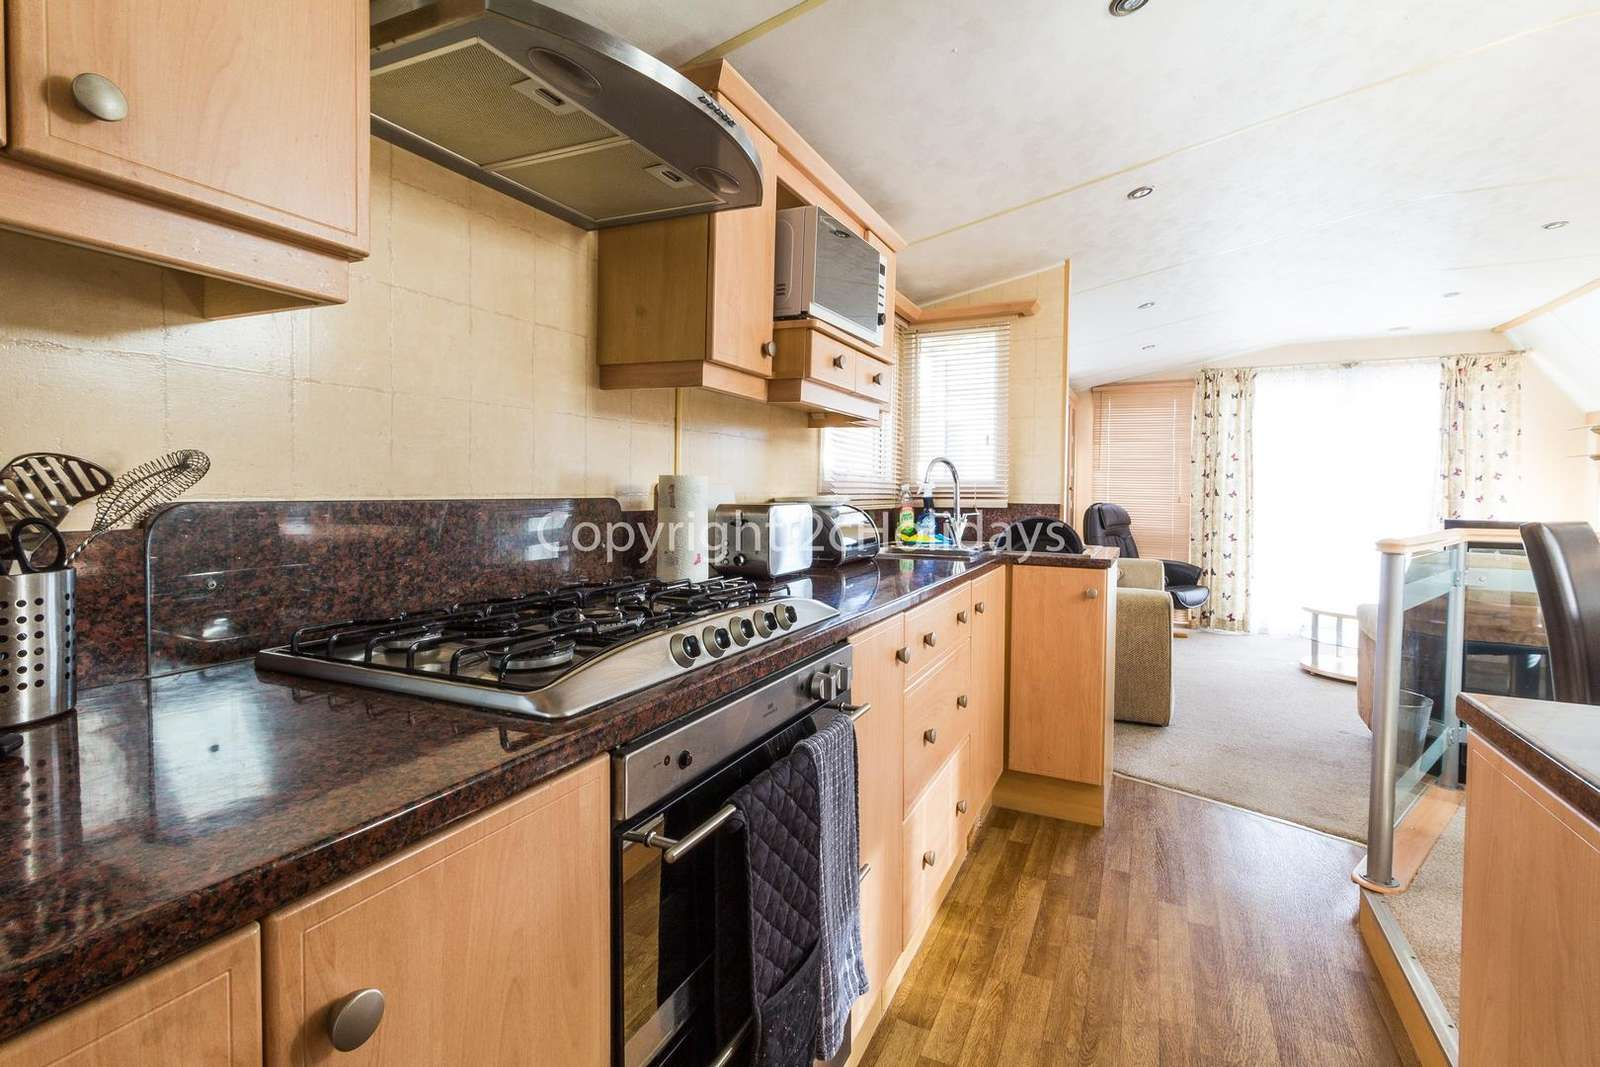 Fully equipped kitchen perfect for self-catering holidays!